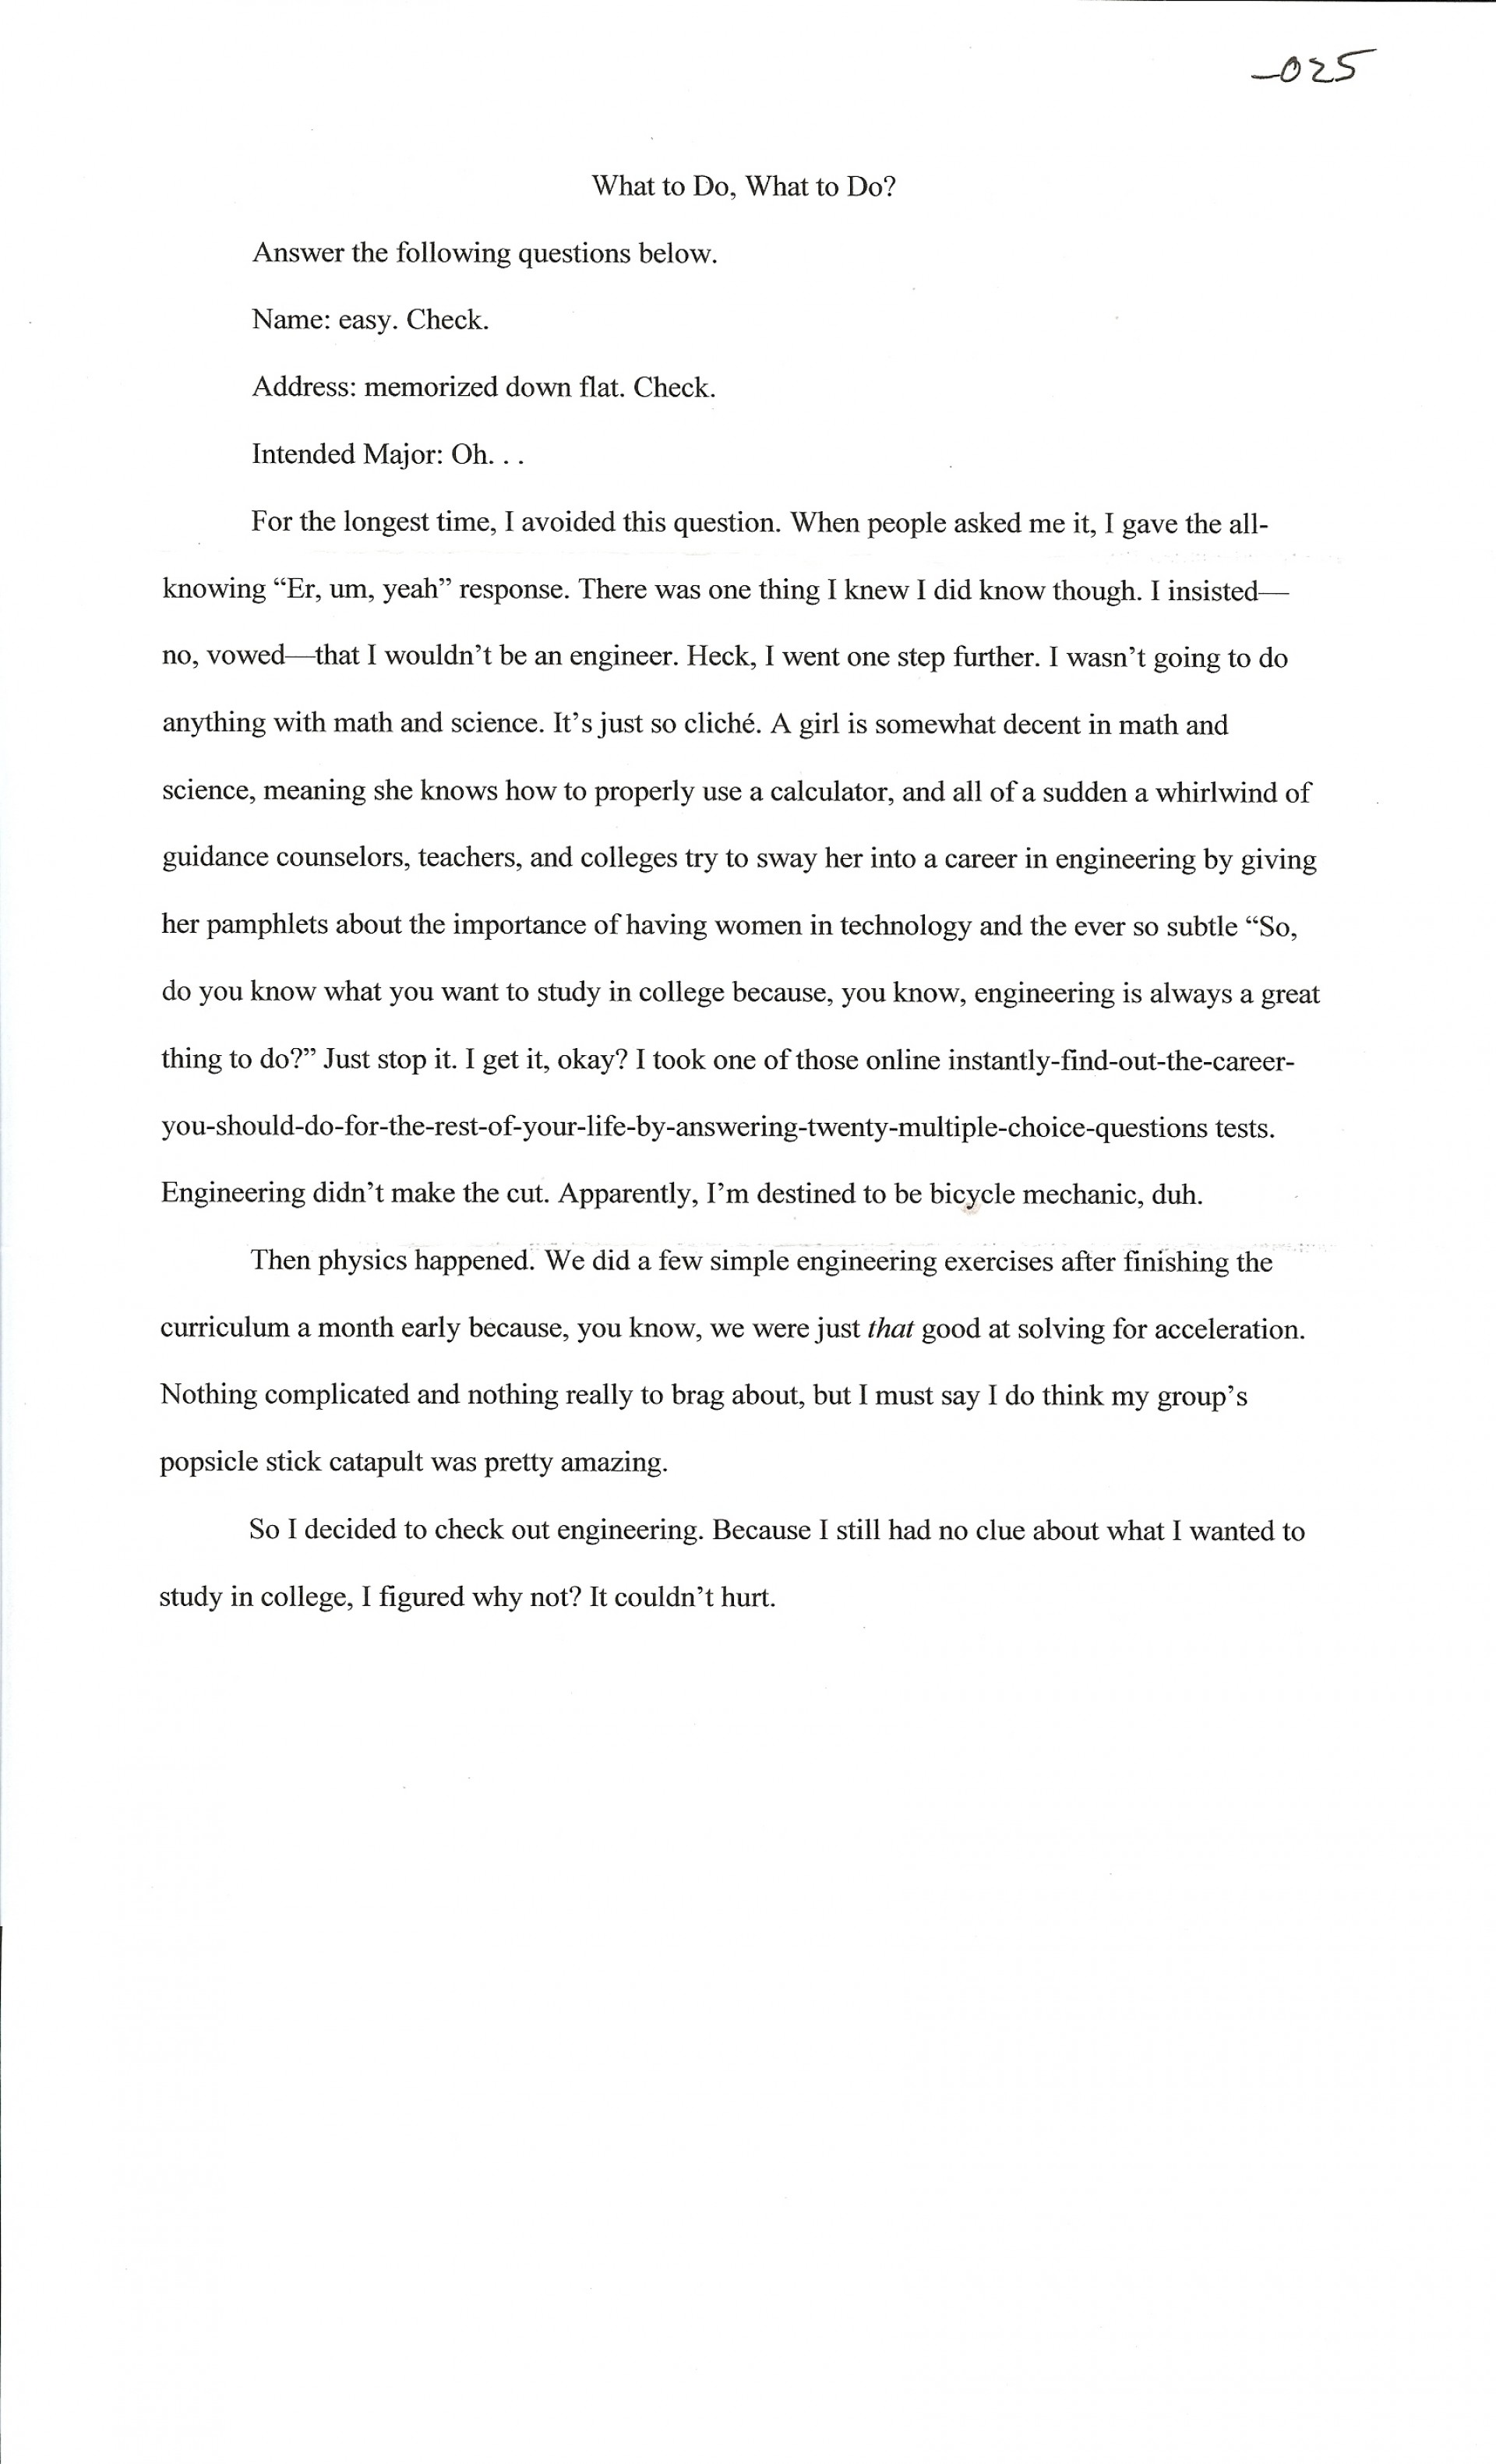 020 Scholarship Essay Titles Contest Writing Personal Caitlin Teague College Contests Student For High School Students Astounding 2019 Middle 1920